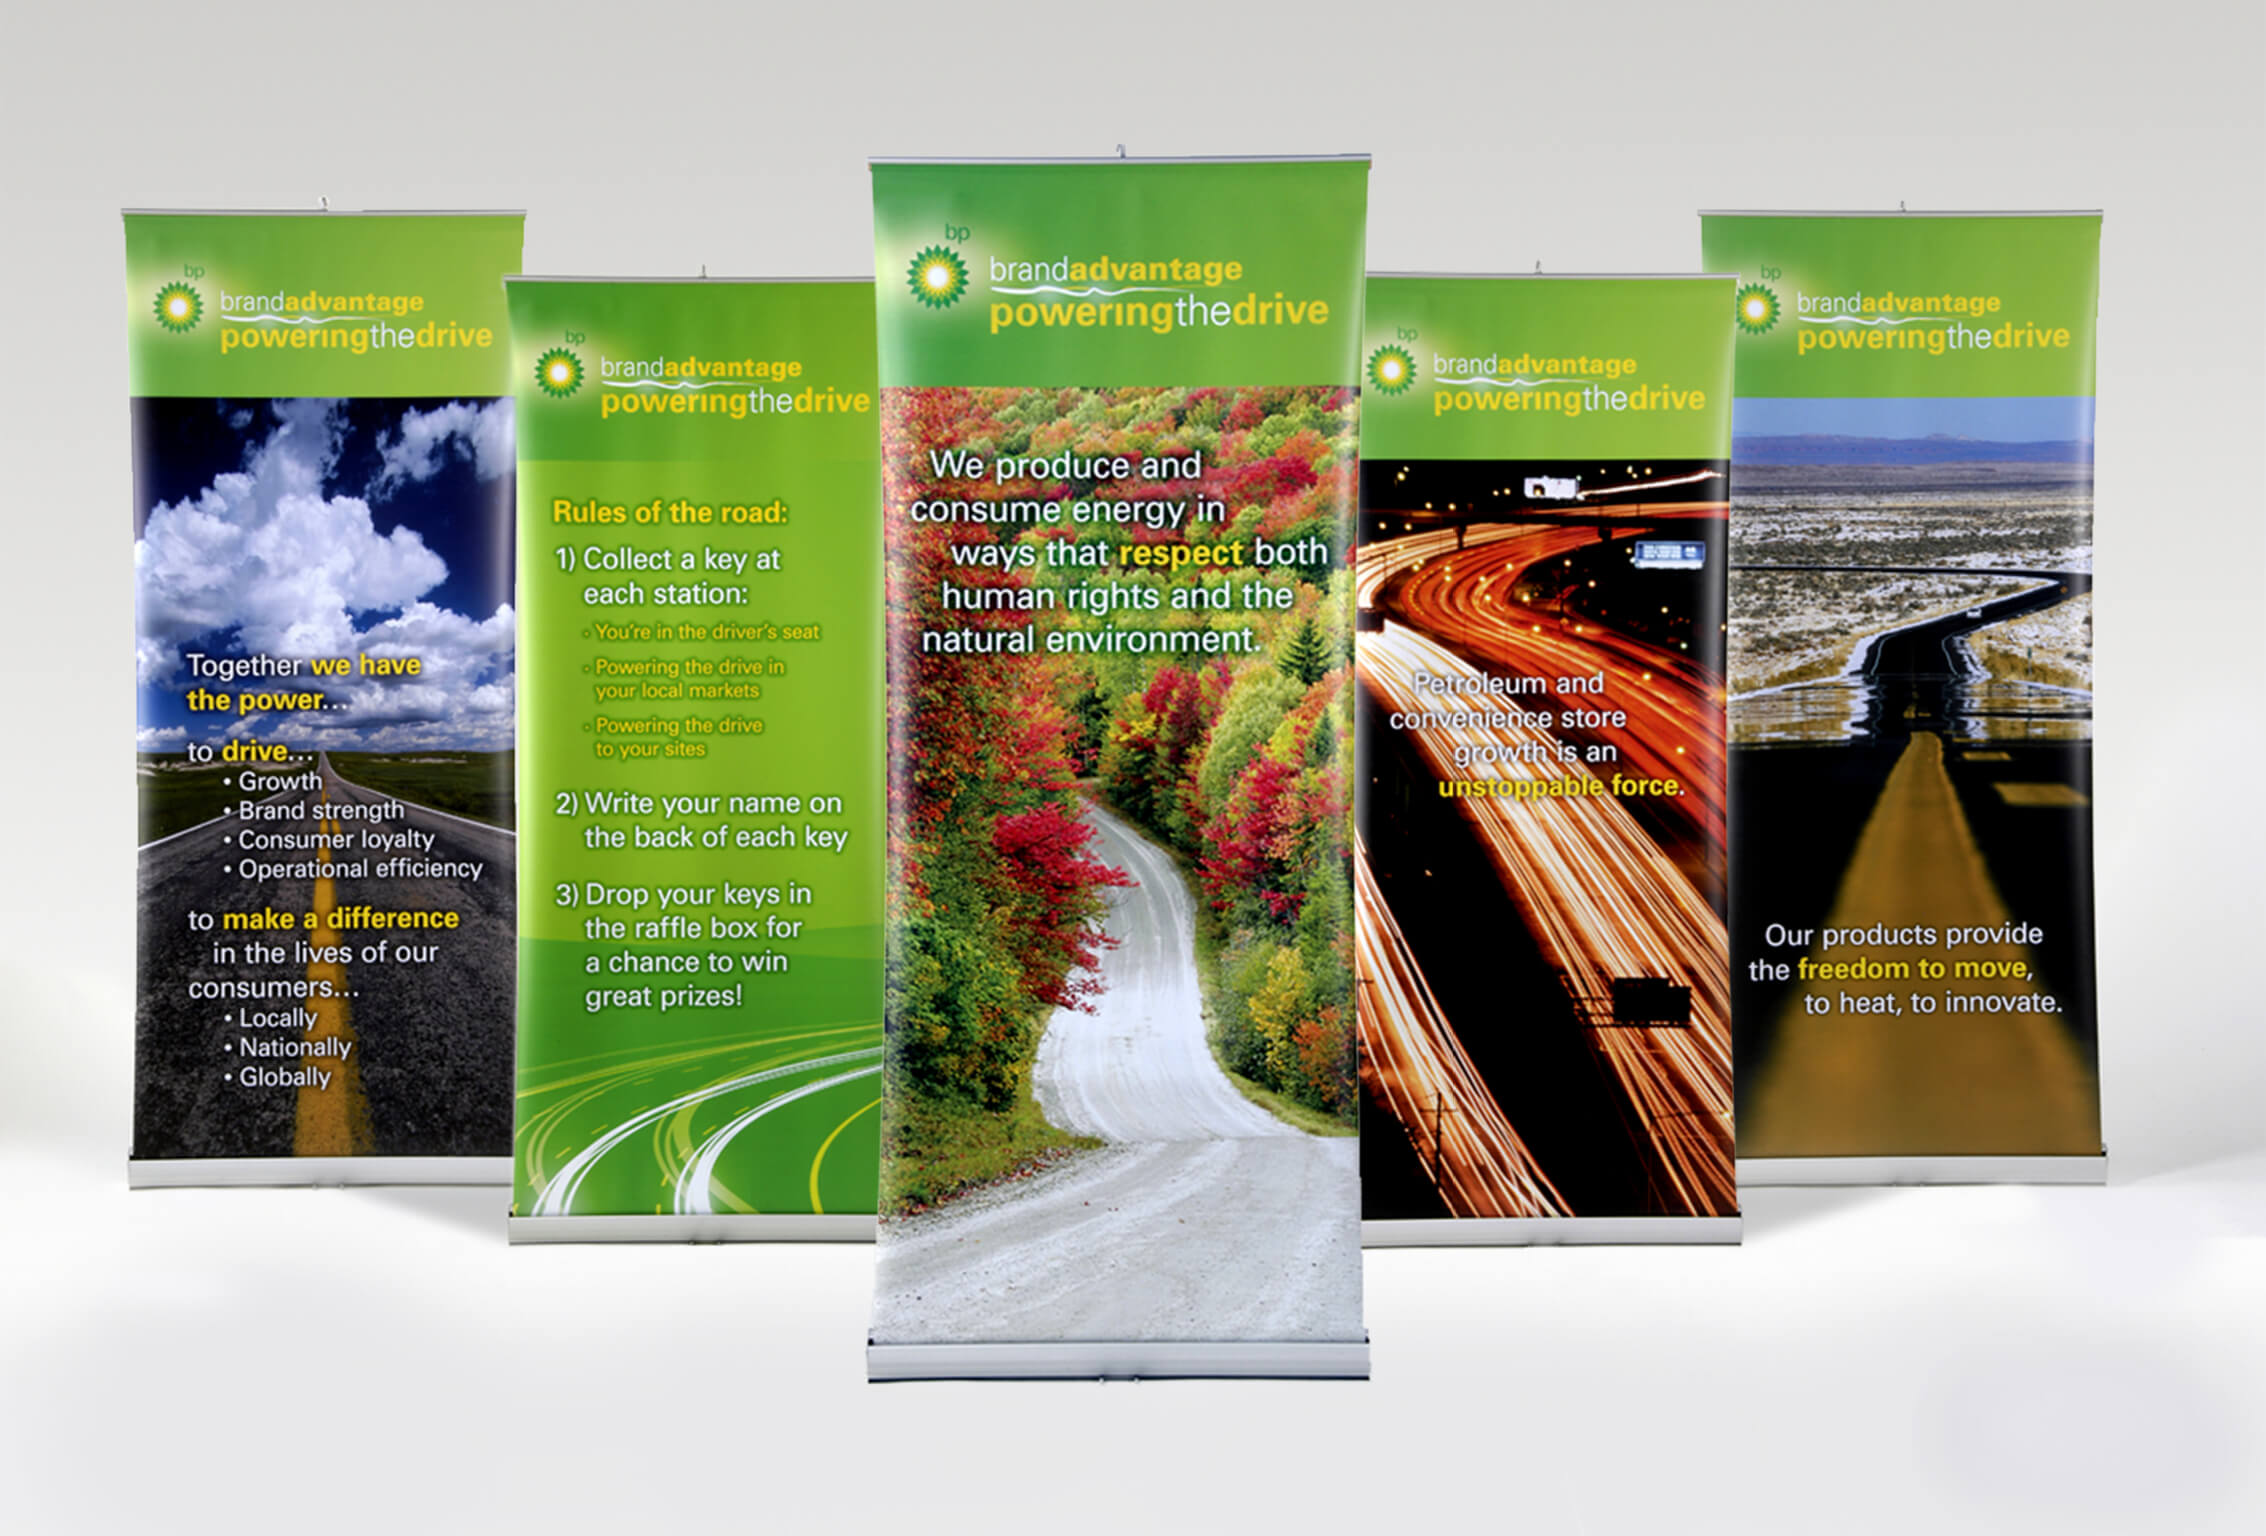 golin bp power the drive retractable banners image